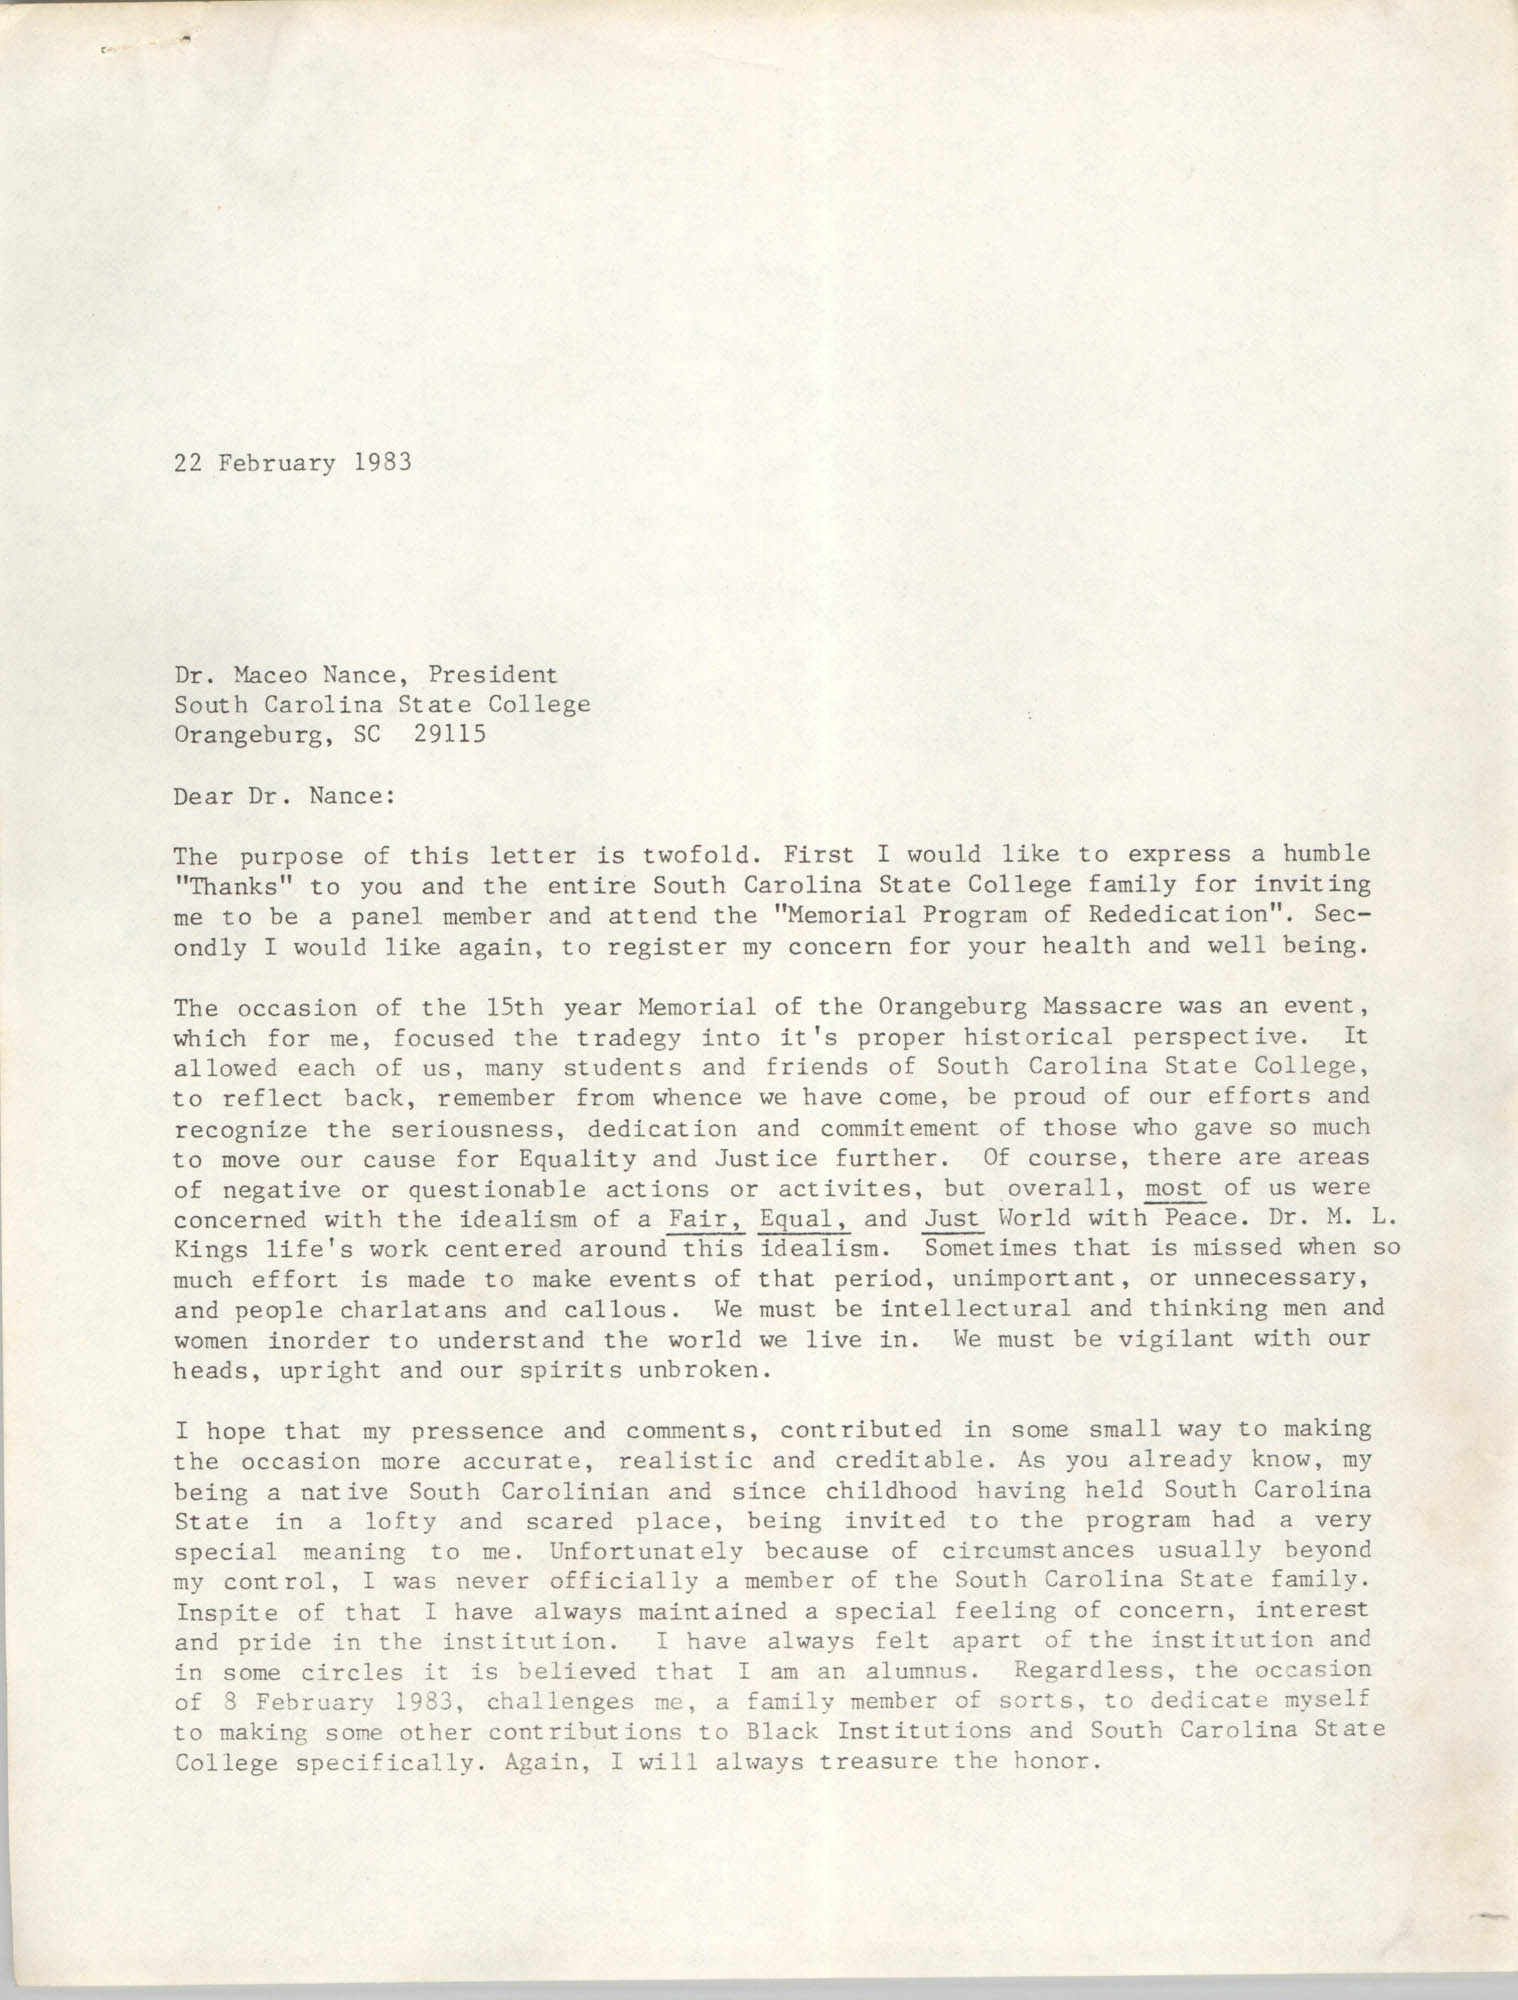 Letter from Cleveland Sellers to Maceo Nance, February 22, 1983